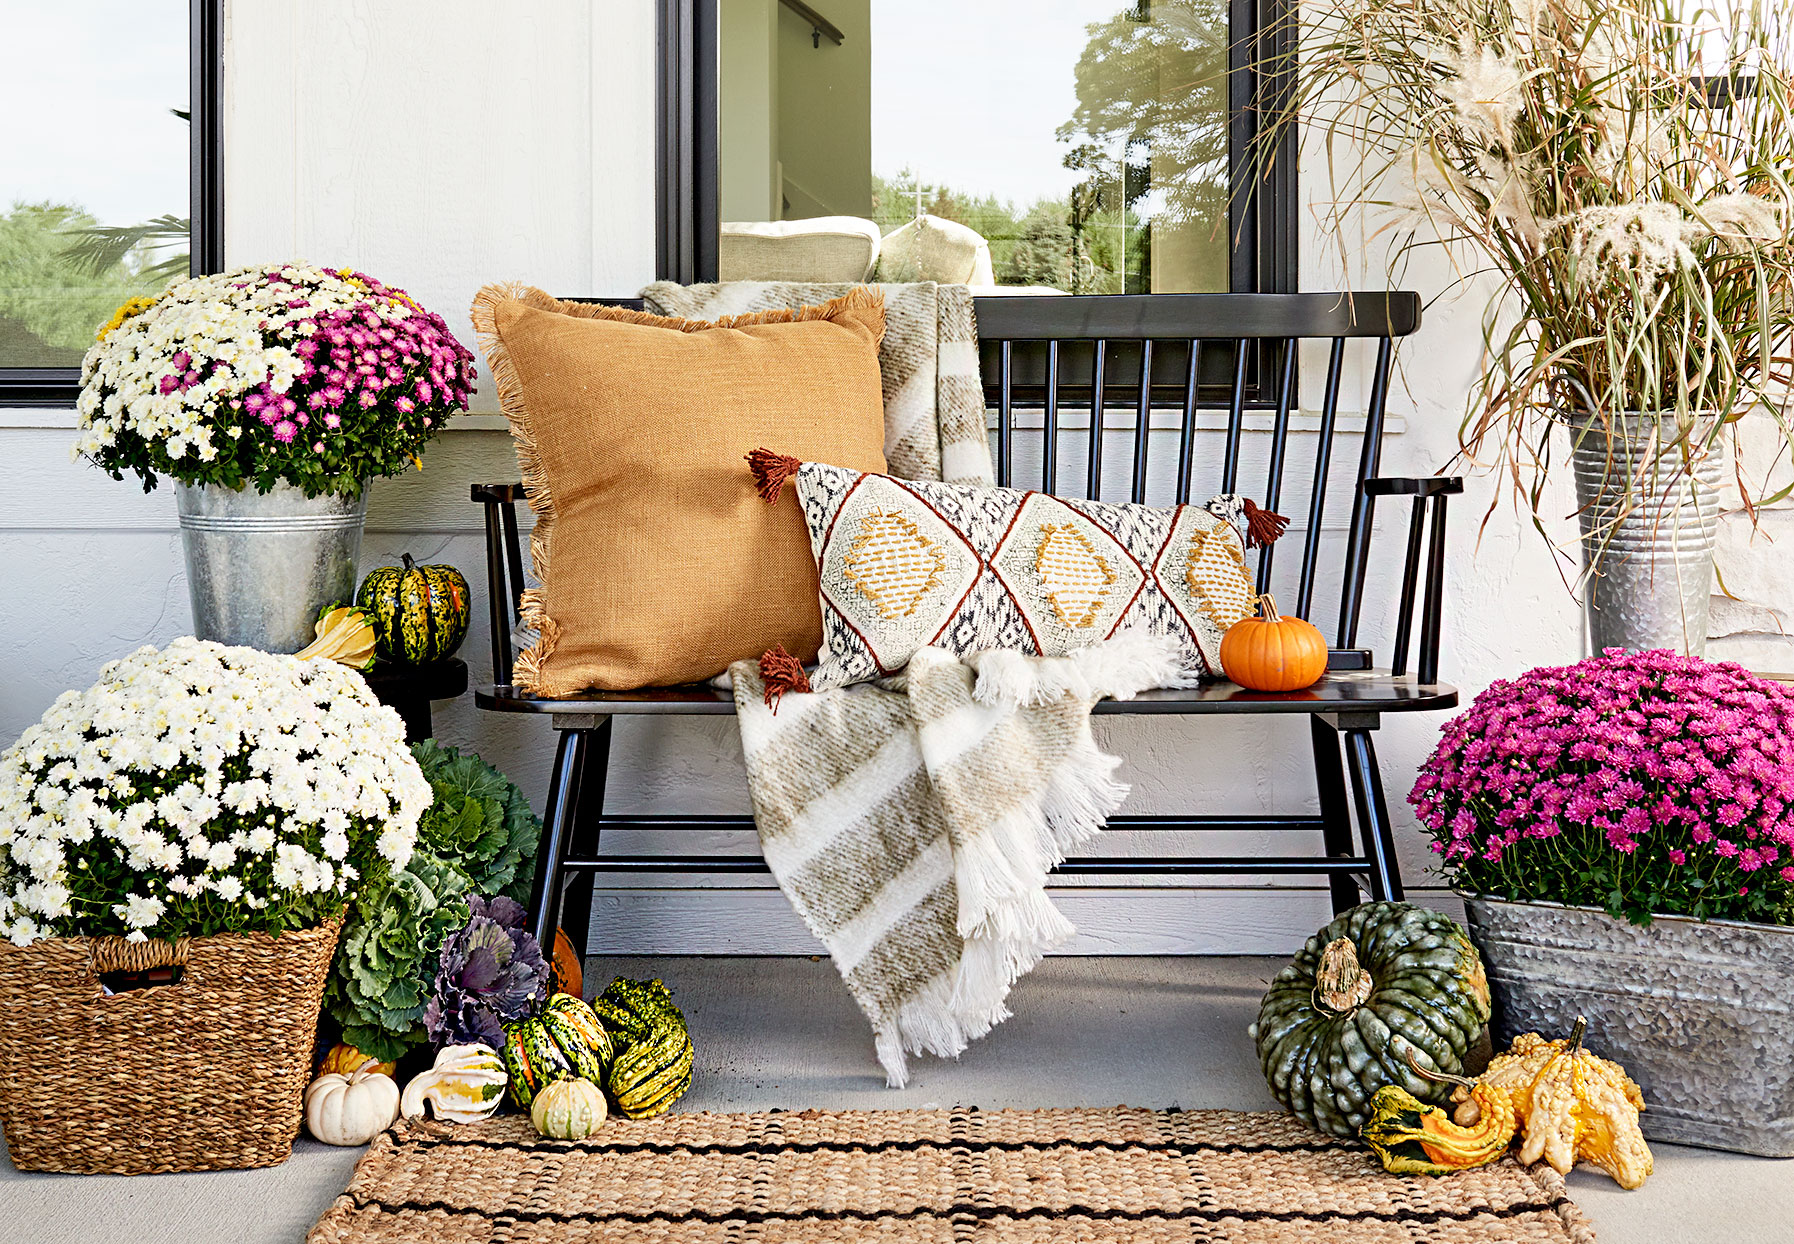 Front porch with wooden seating and flowers